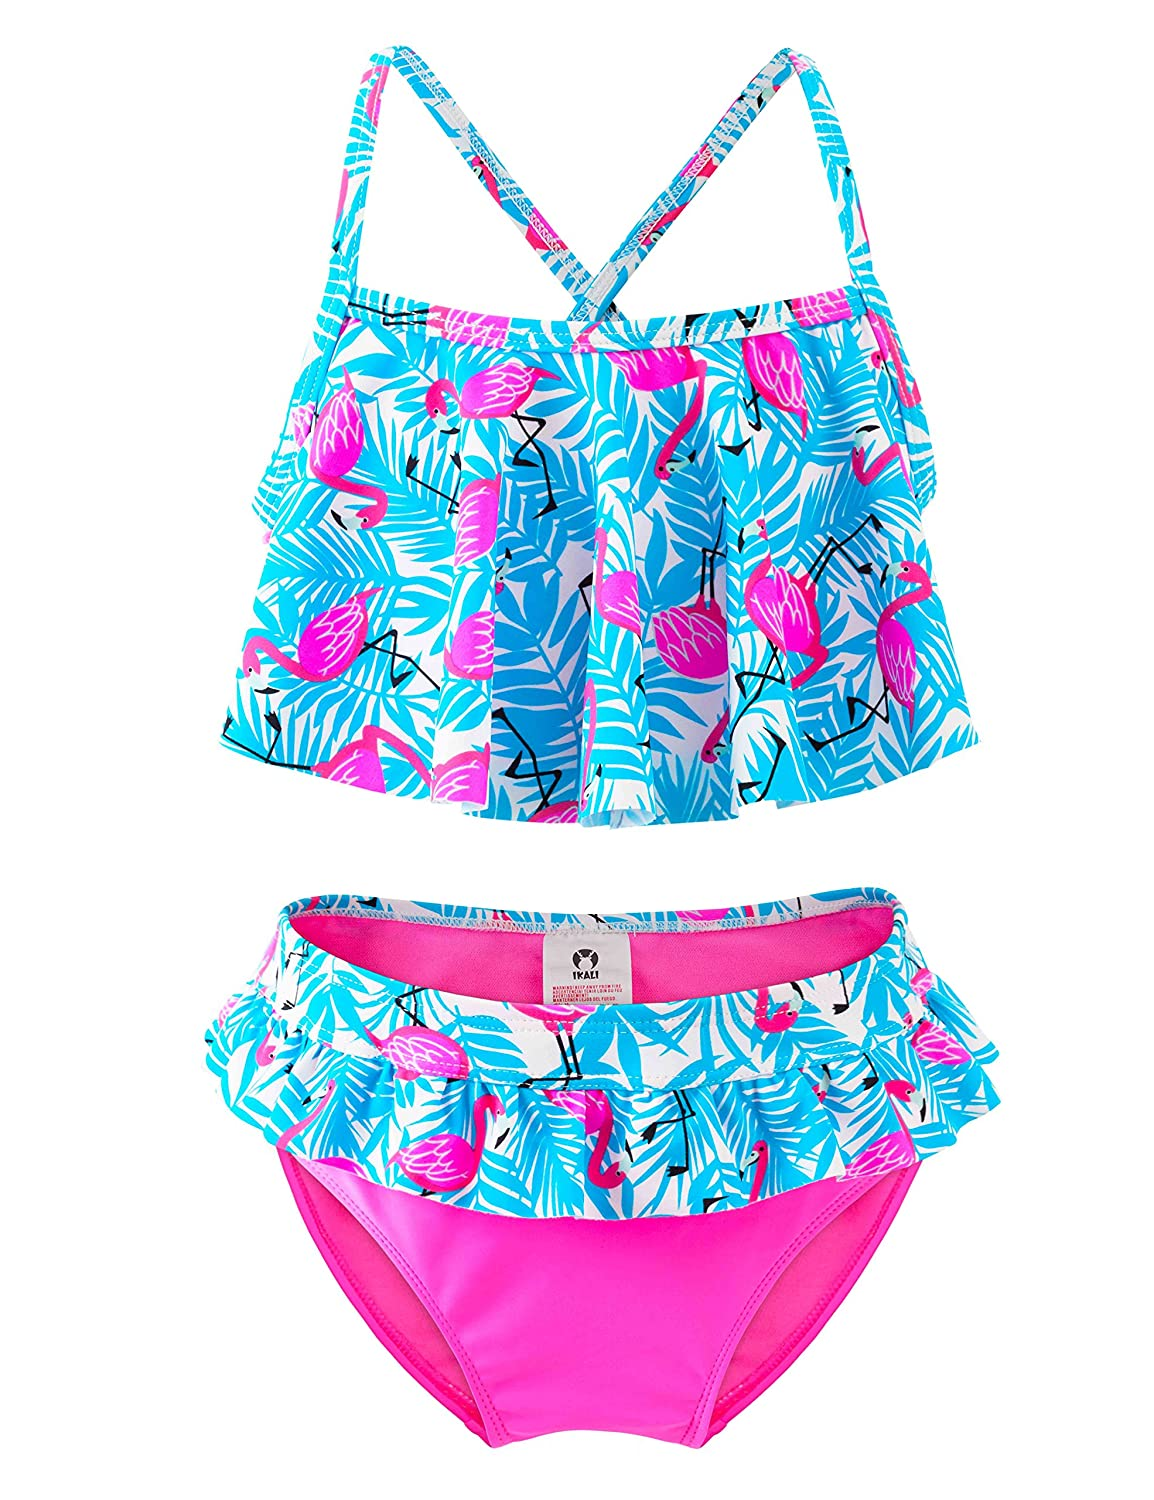 caff621eb0 Amazon.com: Girls Two-Piece Bikini, Ruffle Flamingo Printing Swimsuit, Beach  Bathing Suit for Vacation: Clothing